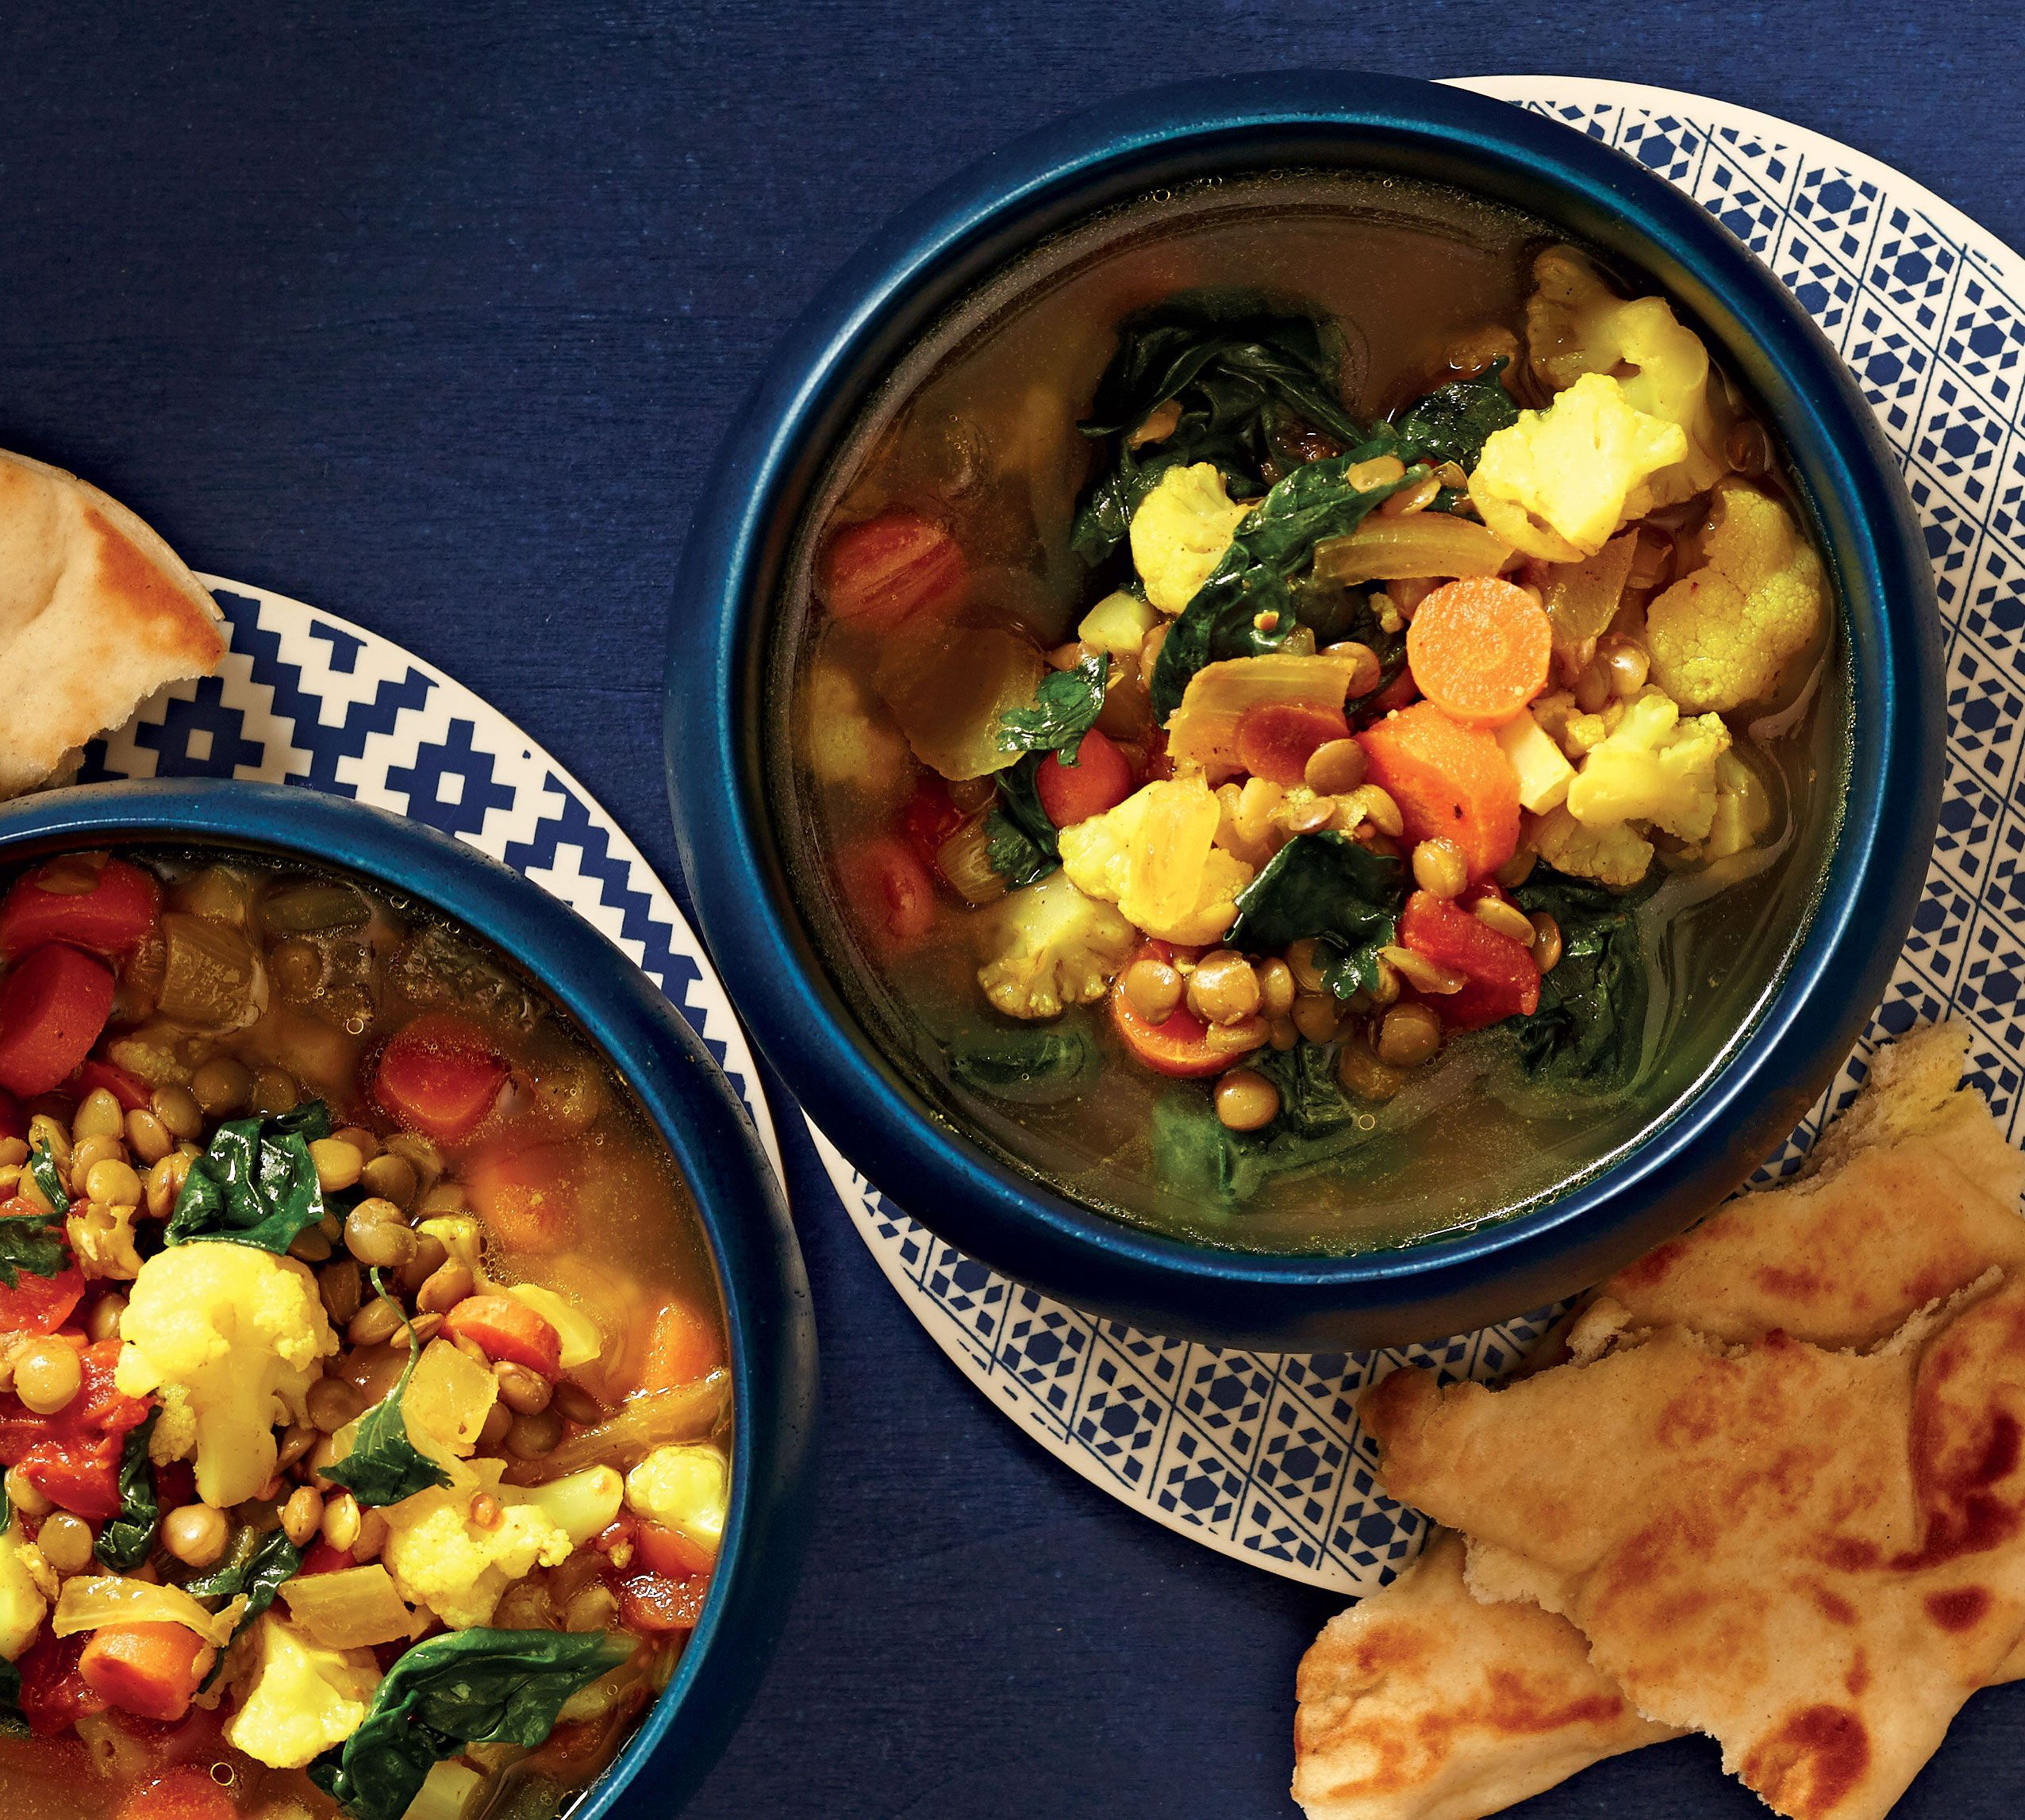 7 Vegetarian Slow-Cooker Recipes So *Everyone* Can Netflix & Chill